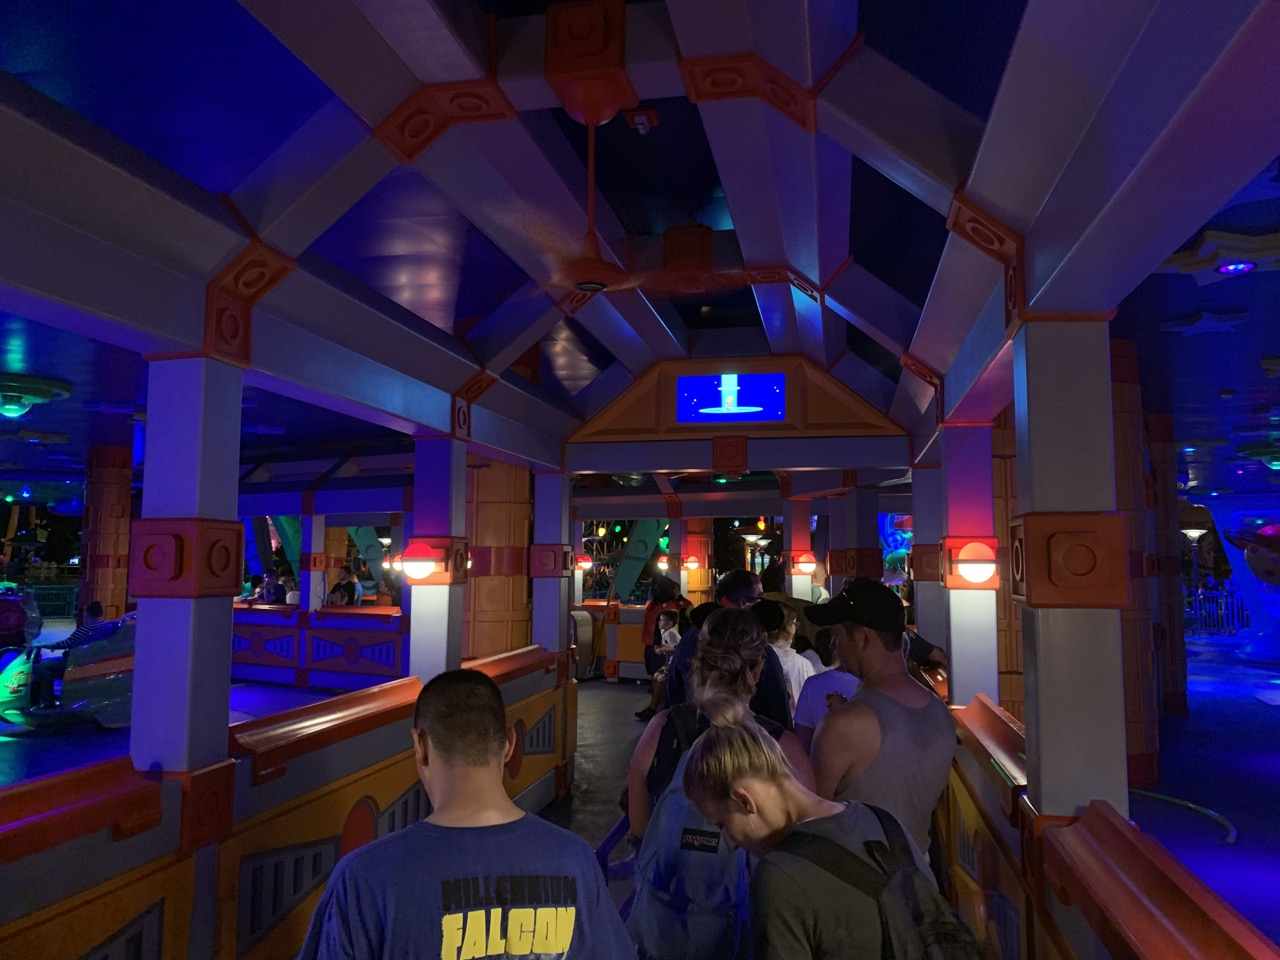 disney world hollywood studios after hours review 06 alien swirling saucers.jpeg